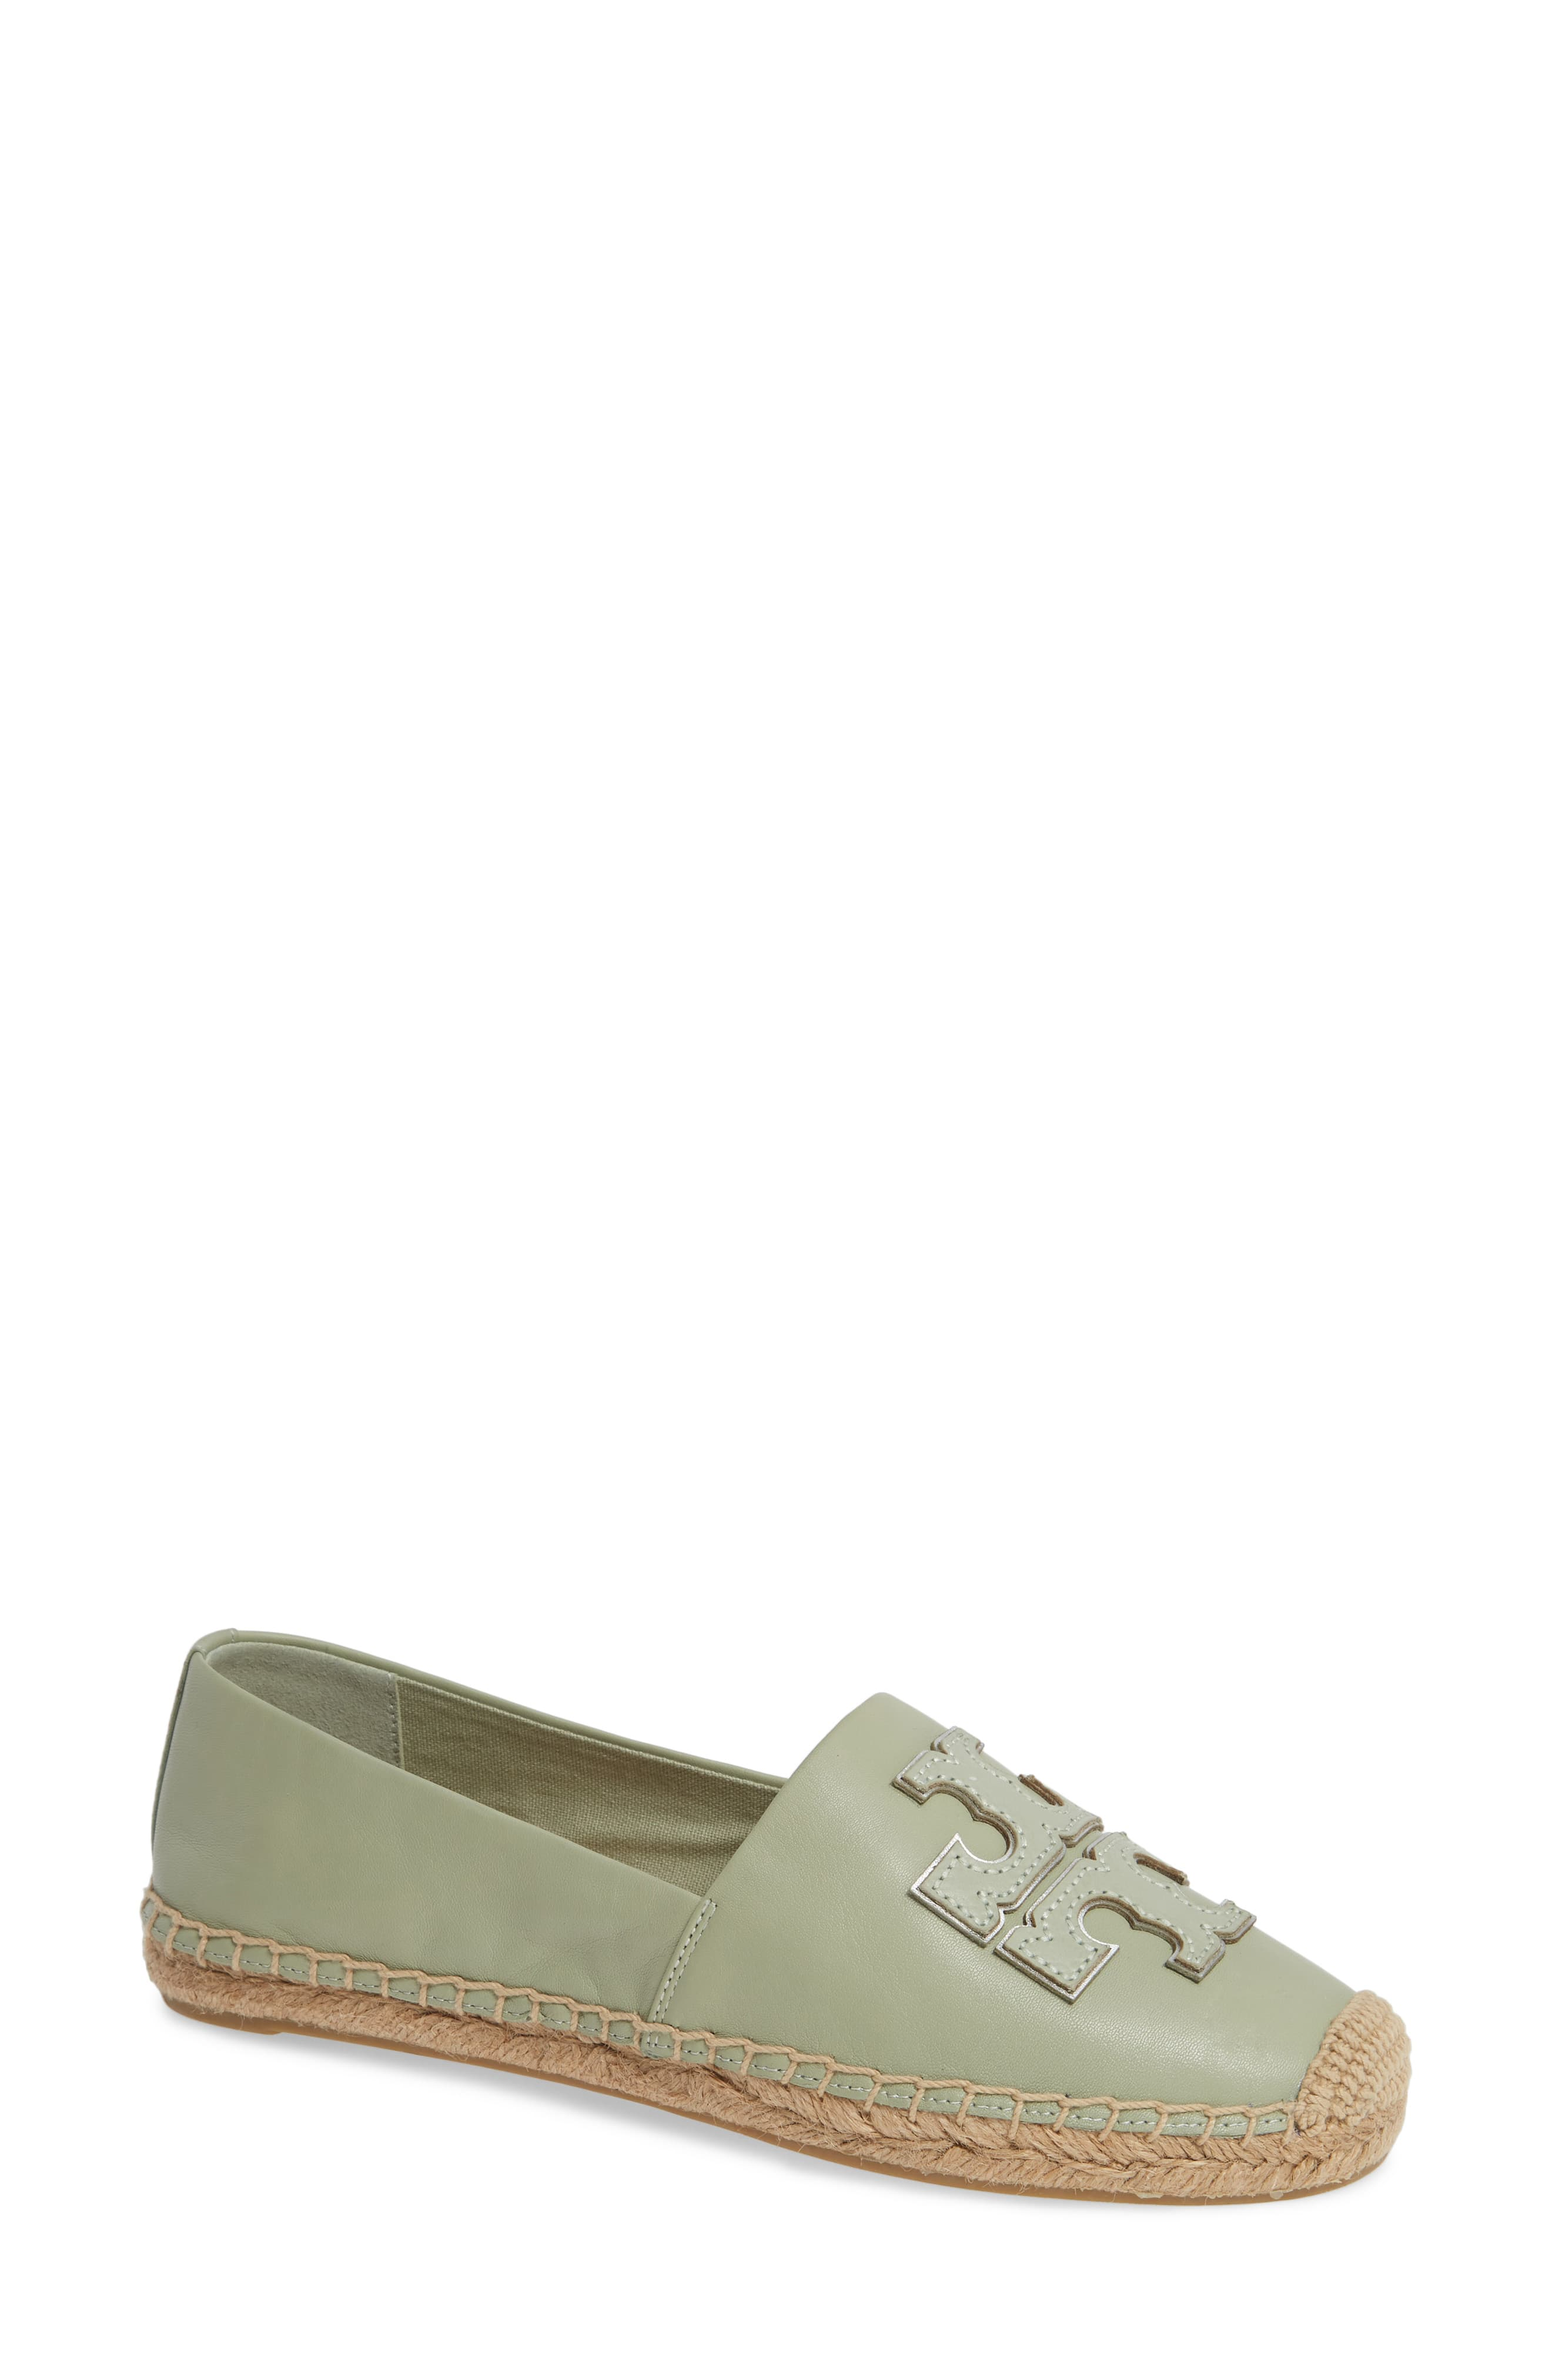 d46228c8d8a Women's Tory Burch Ines Espadrille, Size 5.5 M - Green   Products in ...